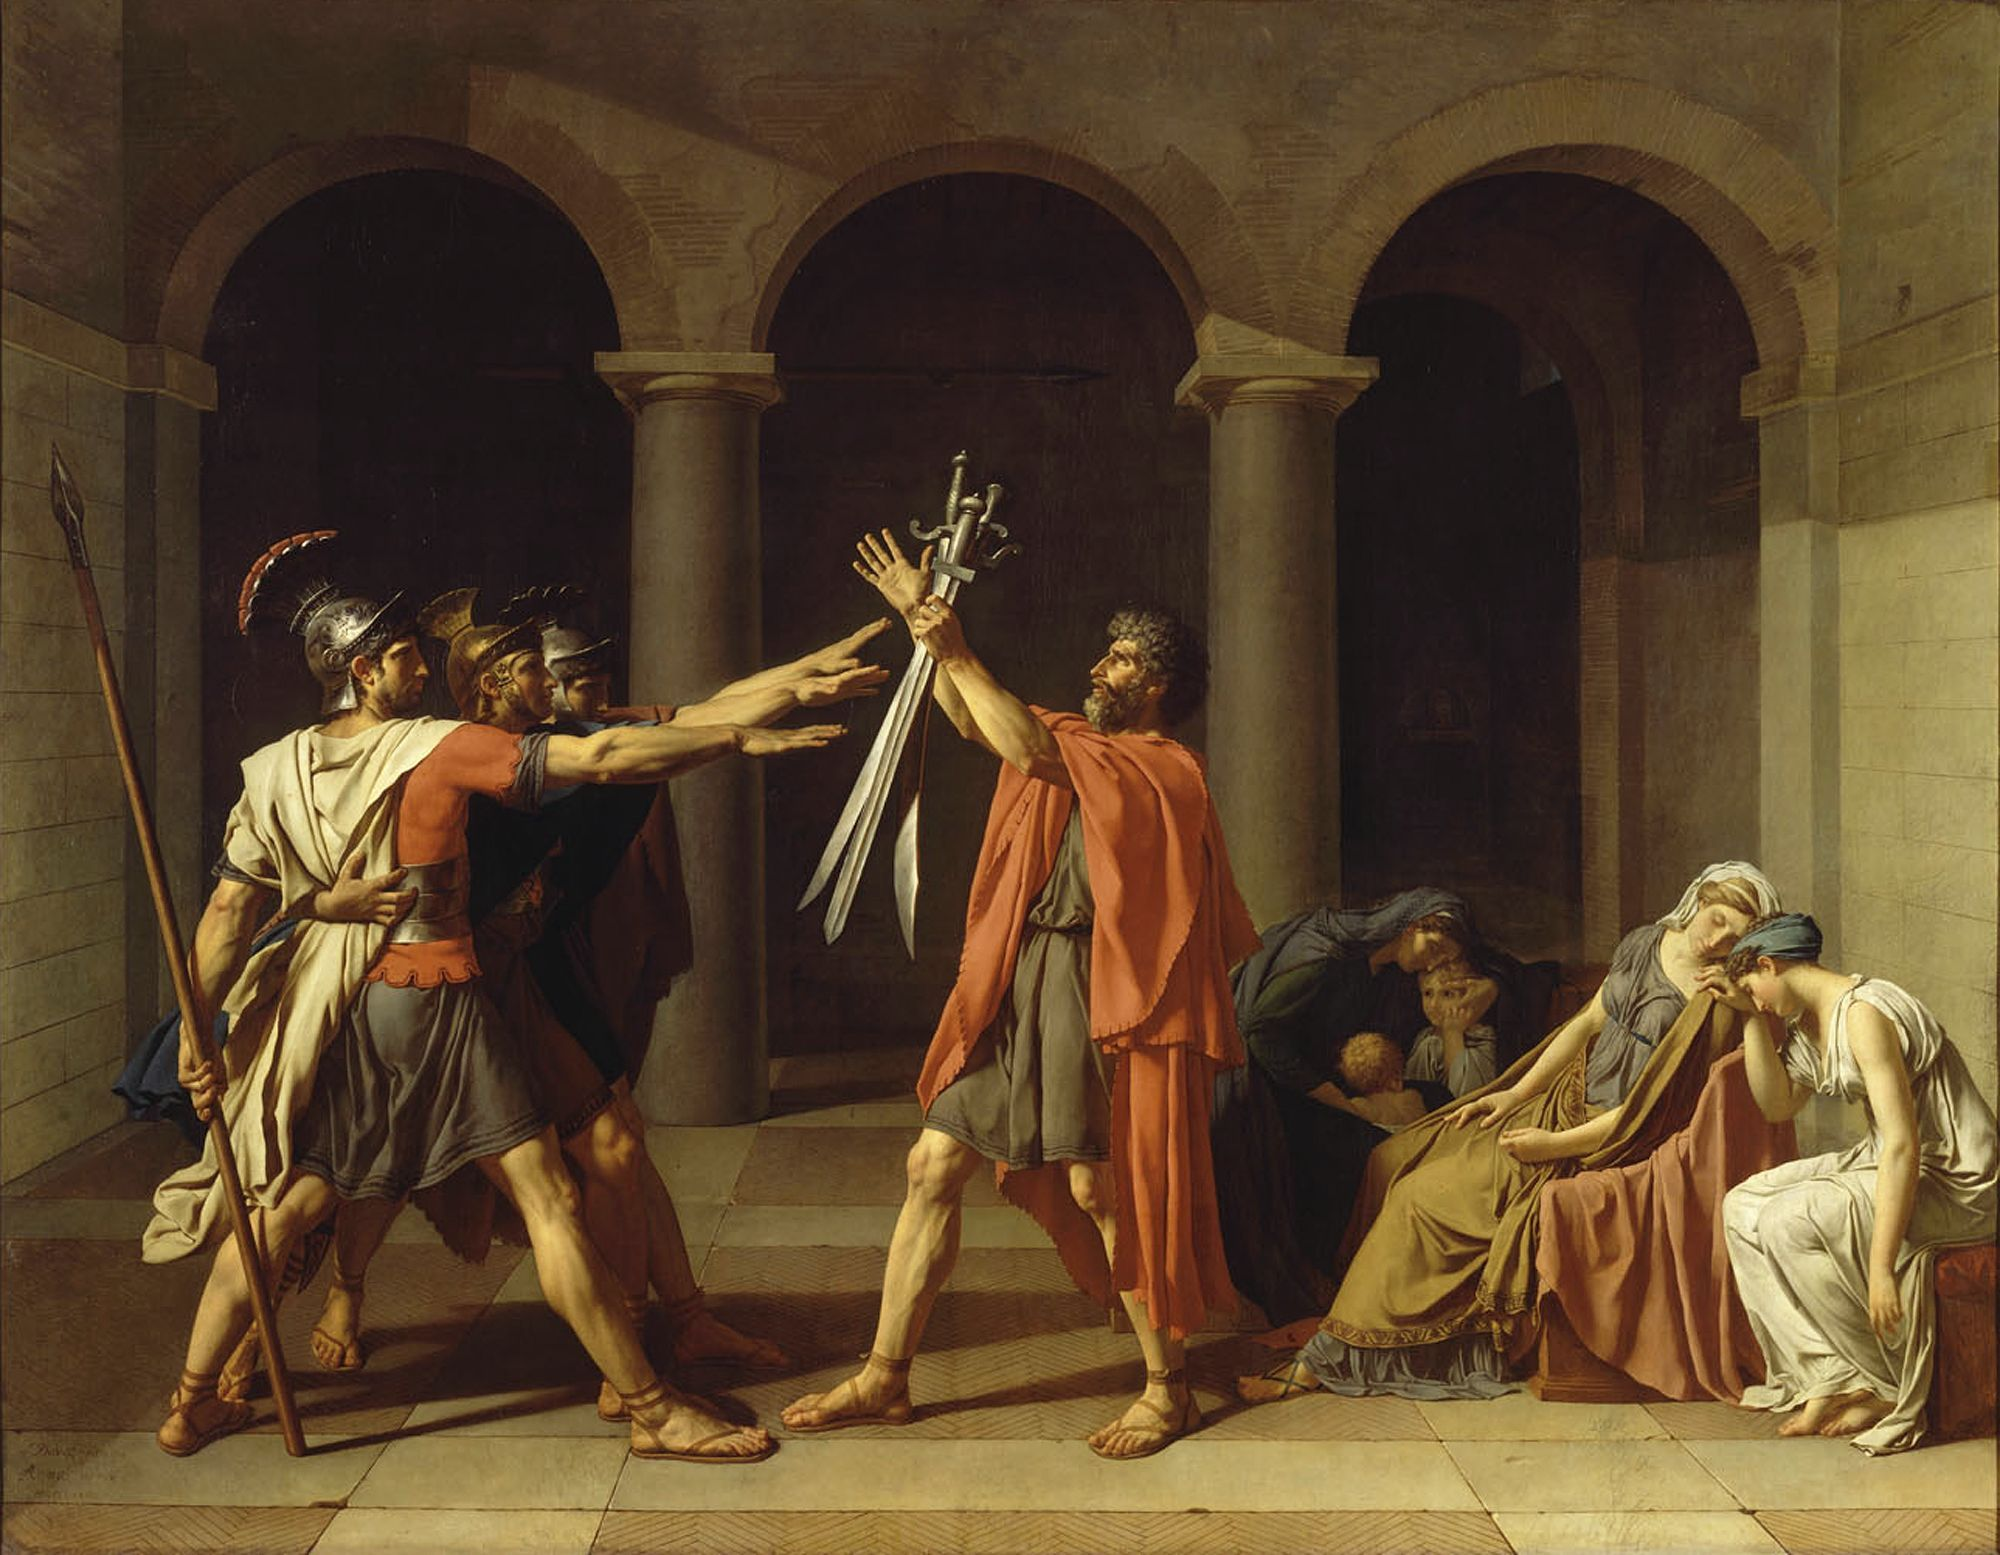 Jacques-Louis David, Le Serment des Horaces © Paris, Musée du Louvre